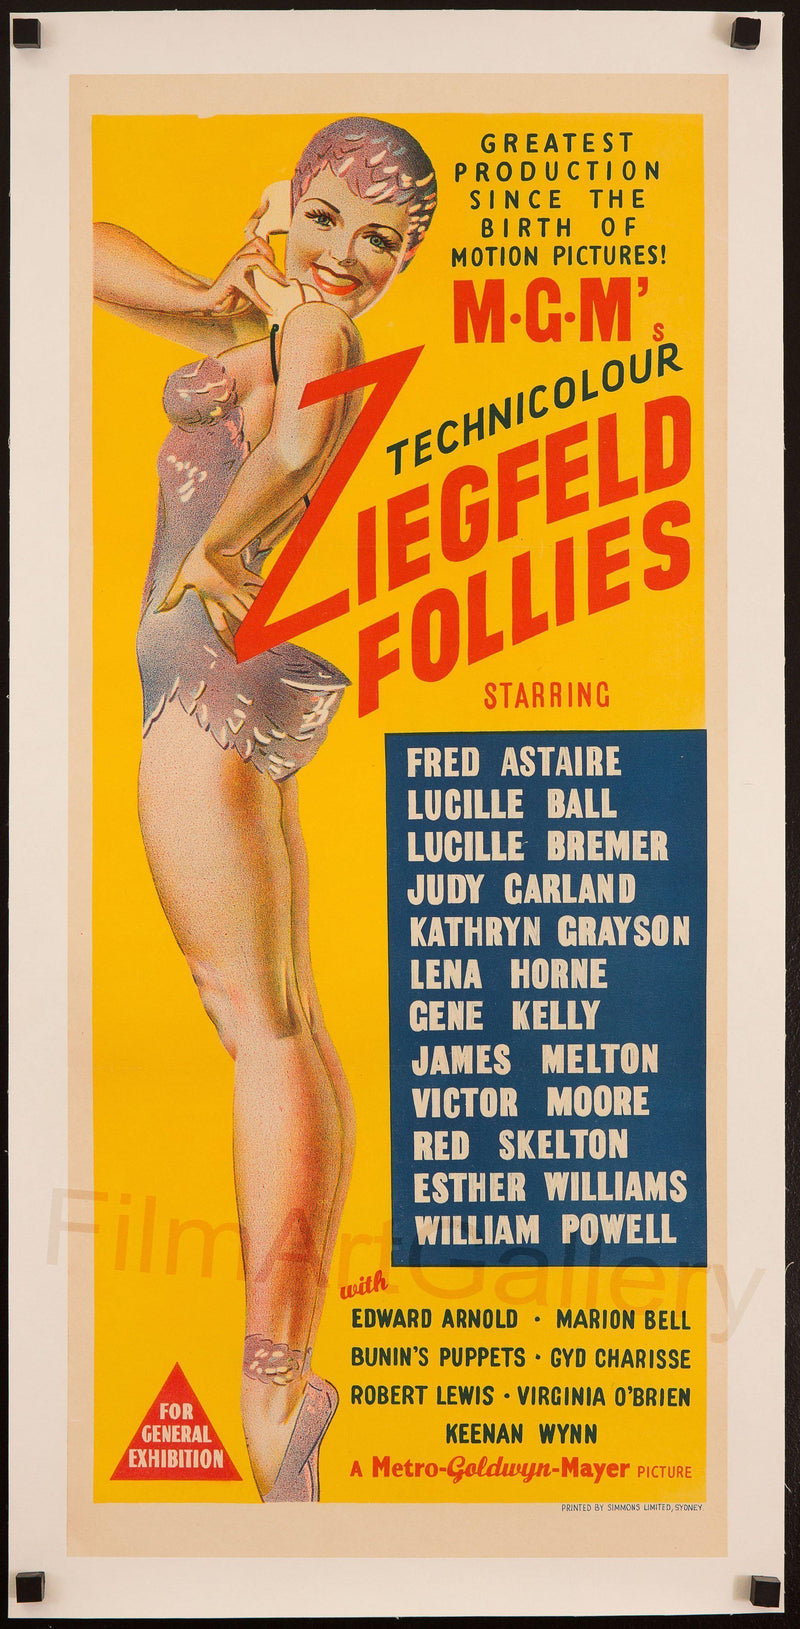 Ziegfeld Follies Australian Daybill (13x30) Original Vintage Movie Poster